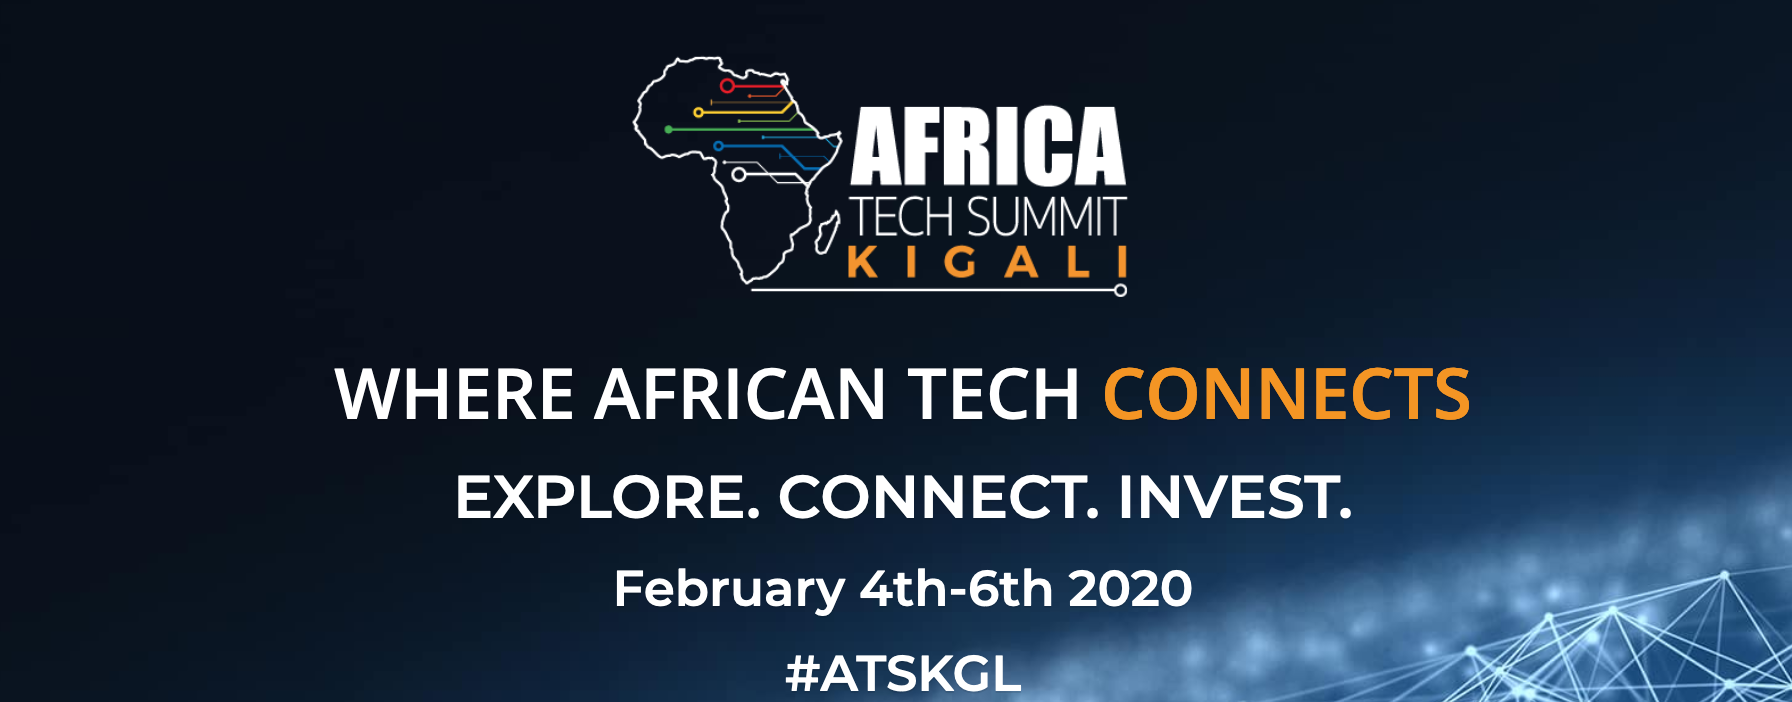 ATS KIGALI 2020 | Where African Tech Connects